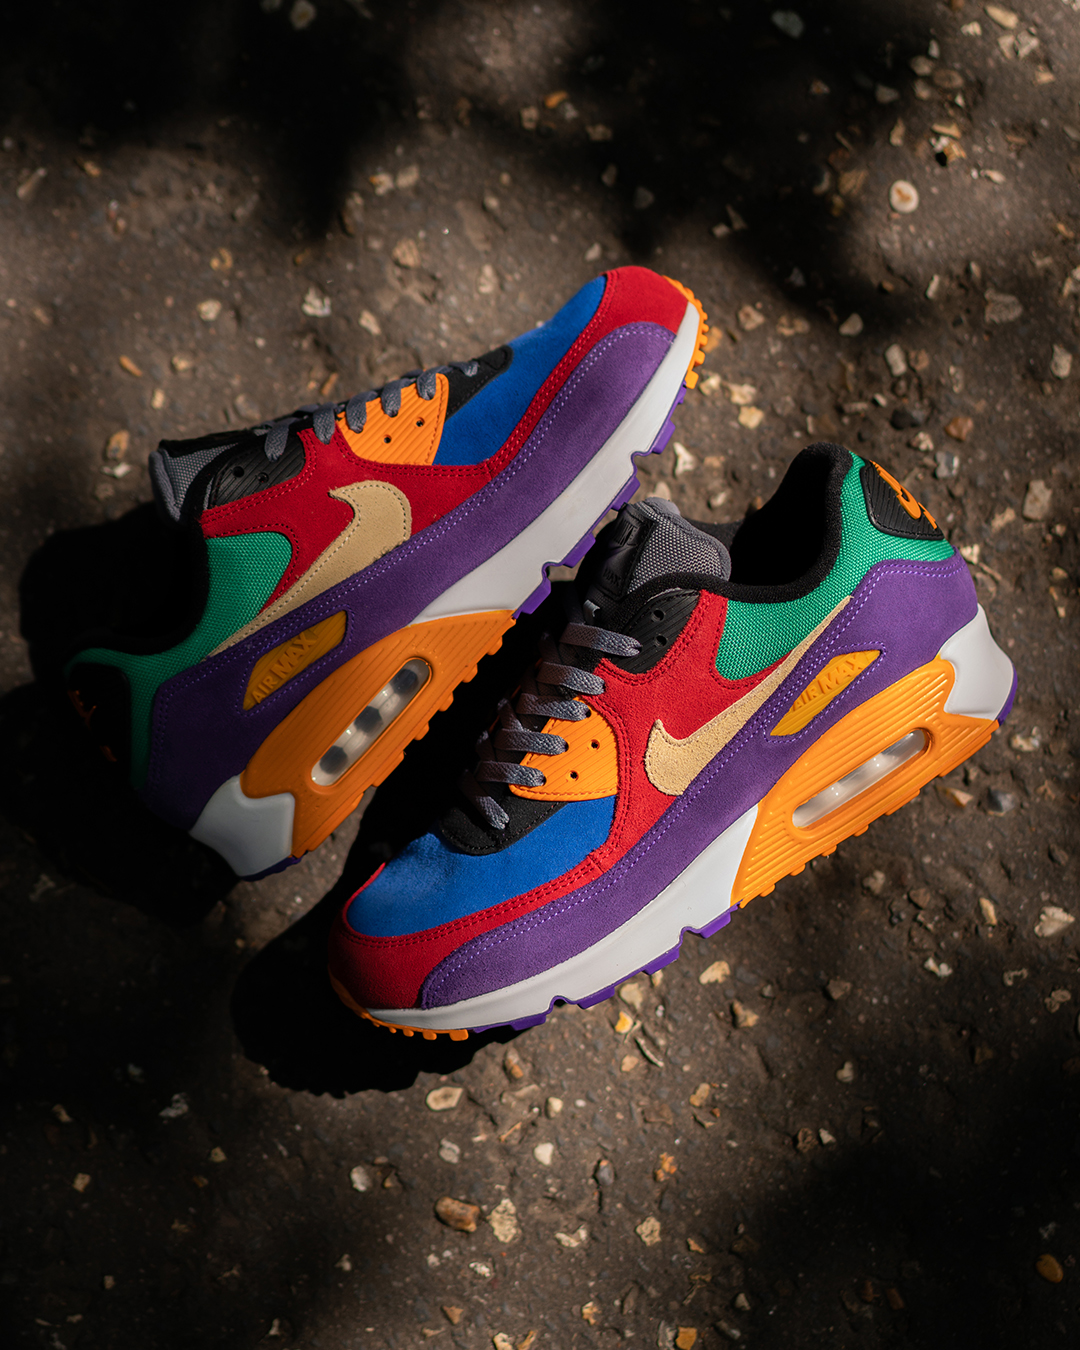 Nikes Air Max 90 Receives The 'Viotech' Treatment Once More